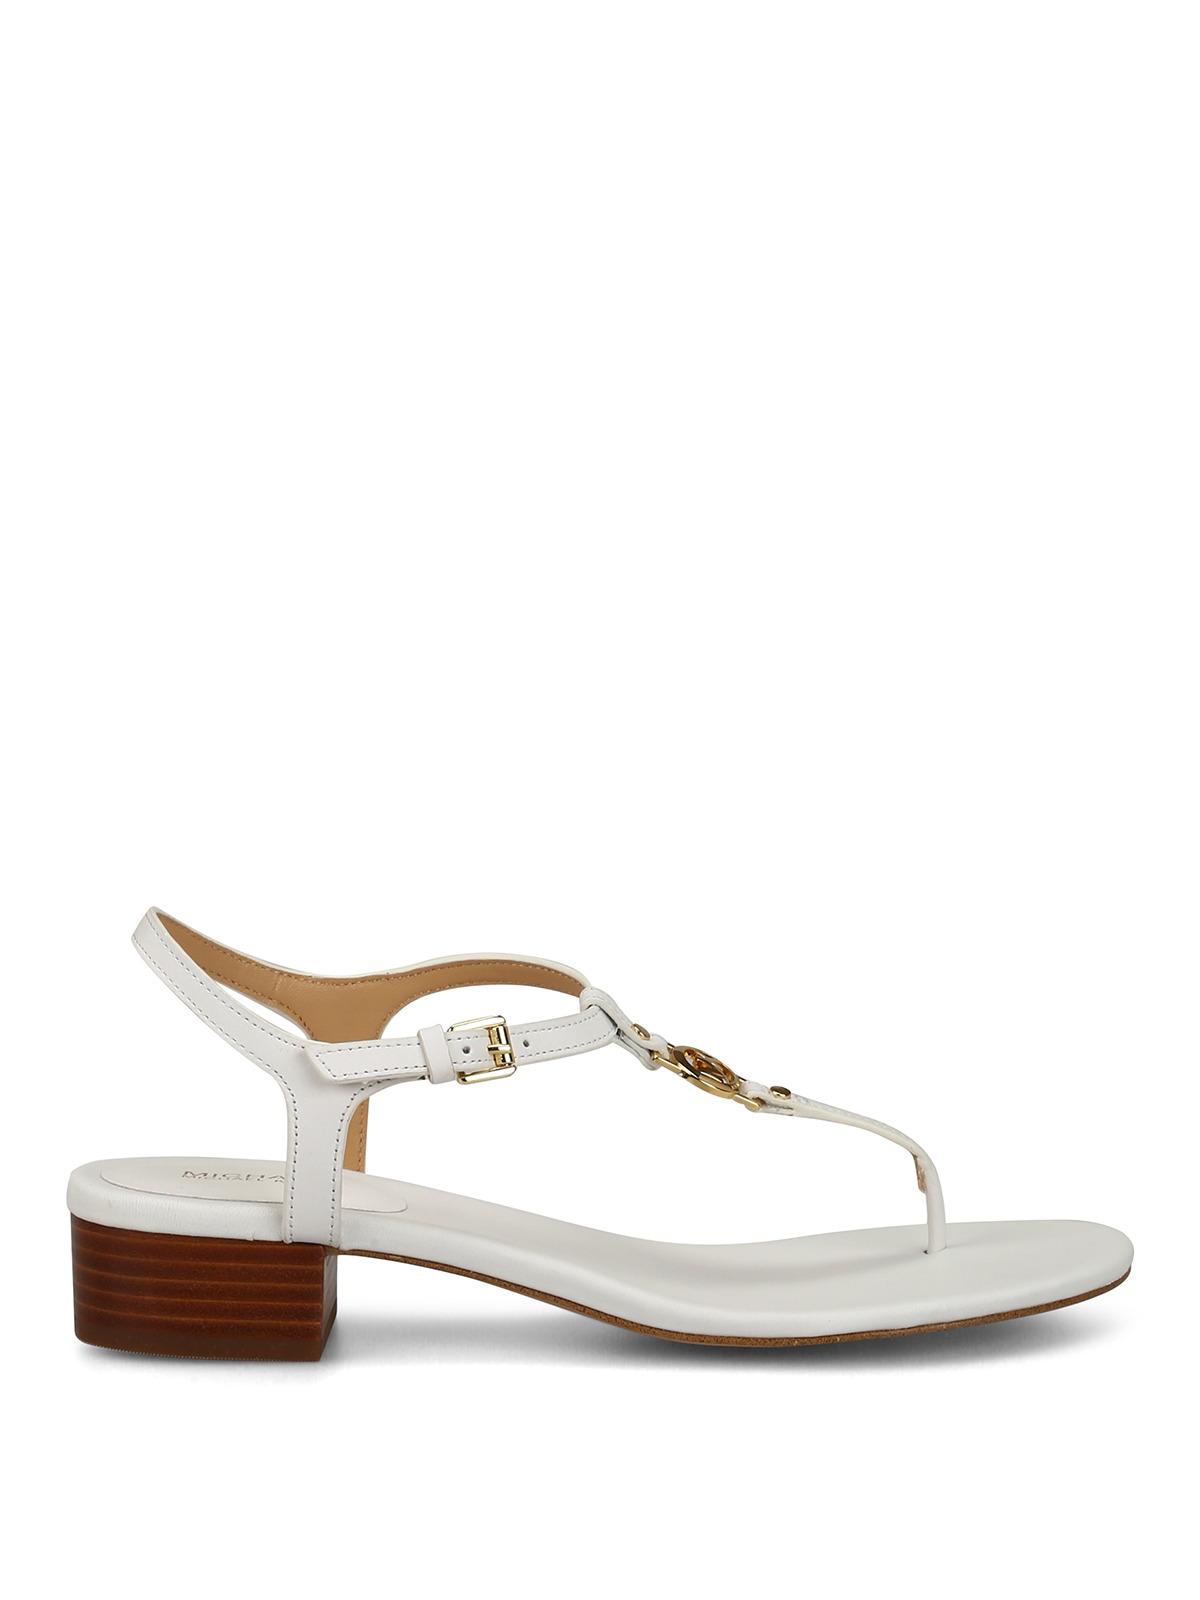 Michael Kors - Cayla Mid white leather